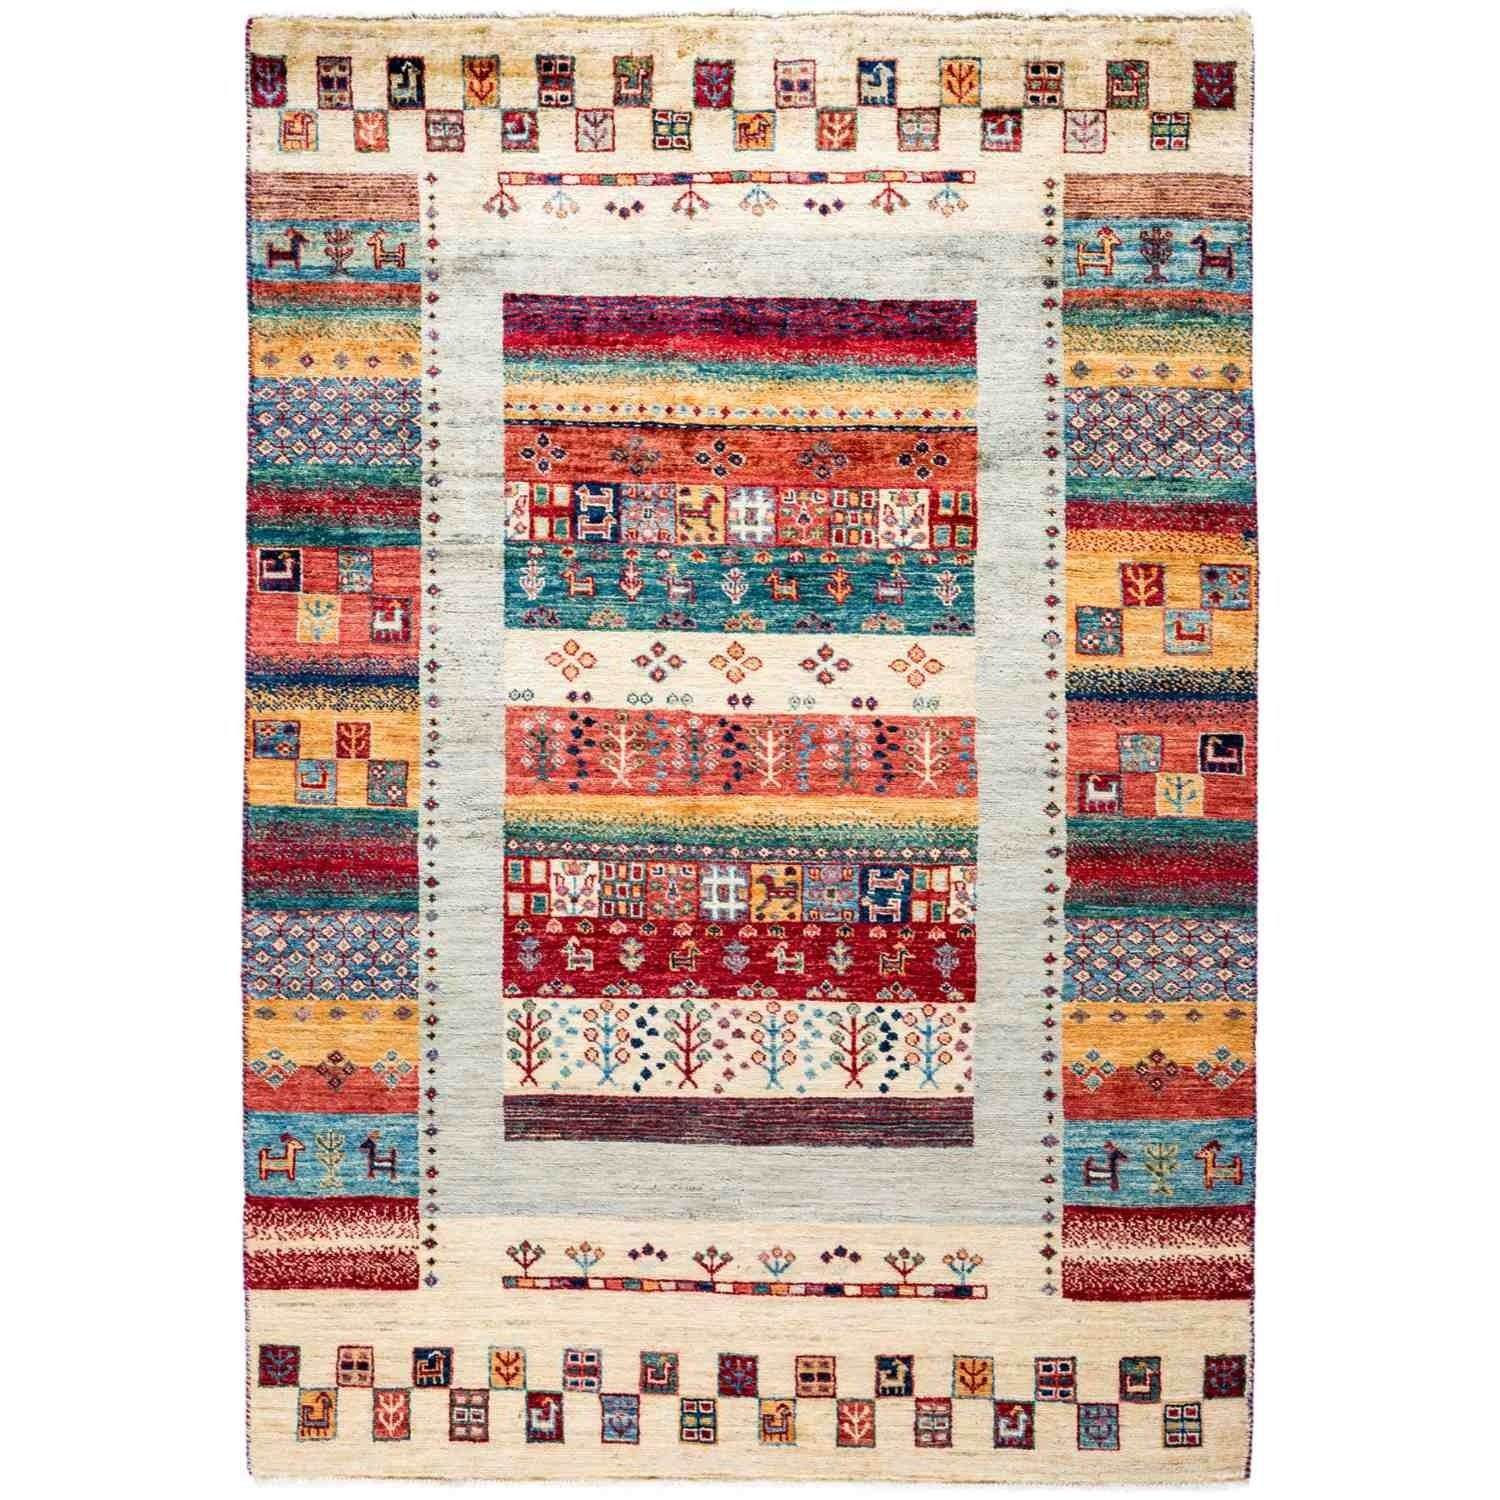 Online Shopping Bedding Furniture Electronics Jewelry Clothing More Colorful Rugs Area Rugs Rugs